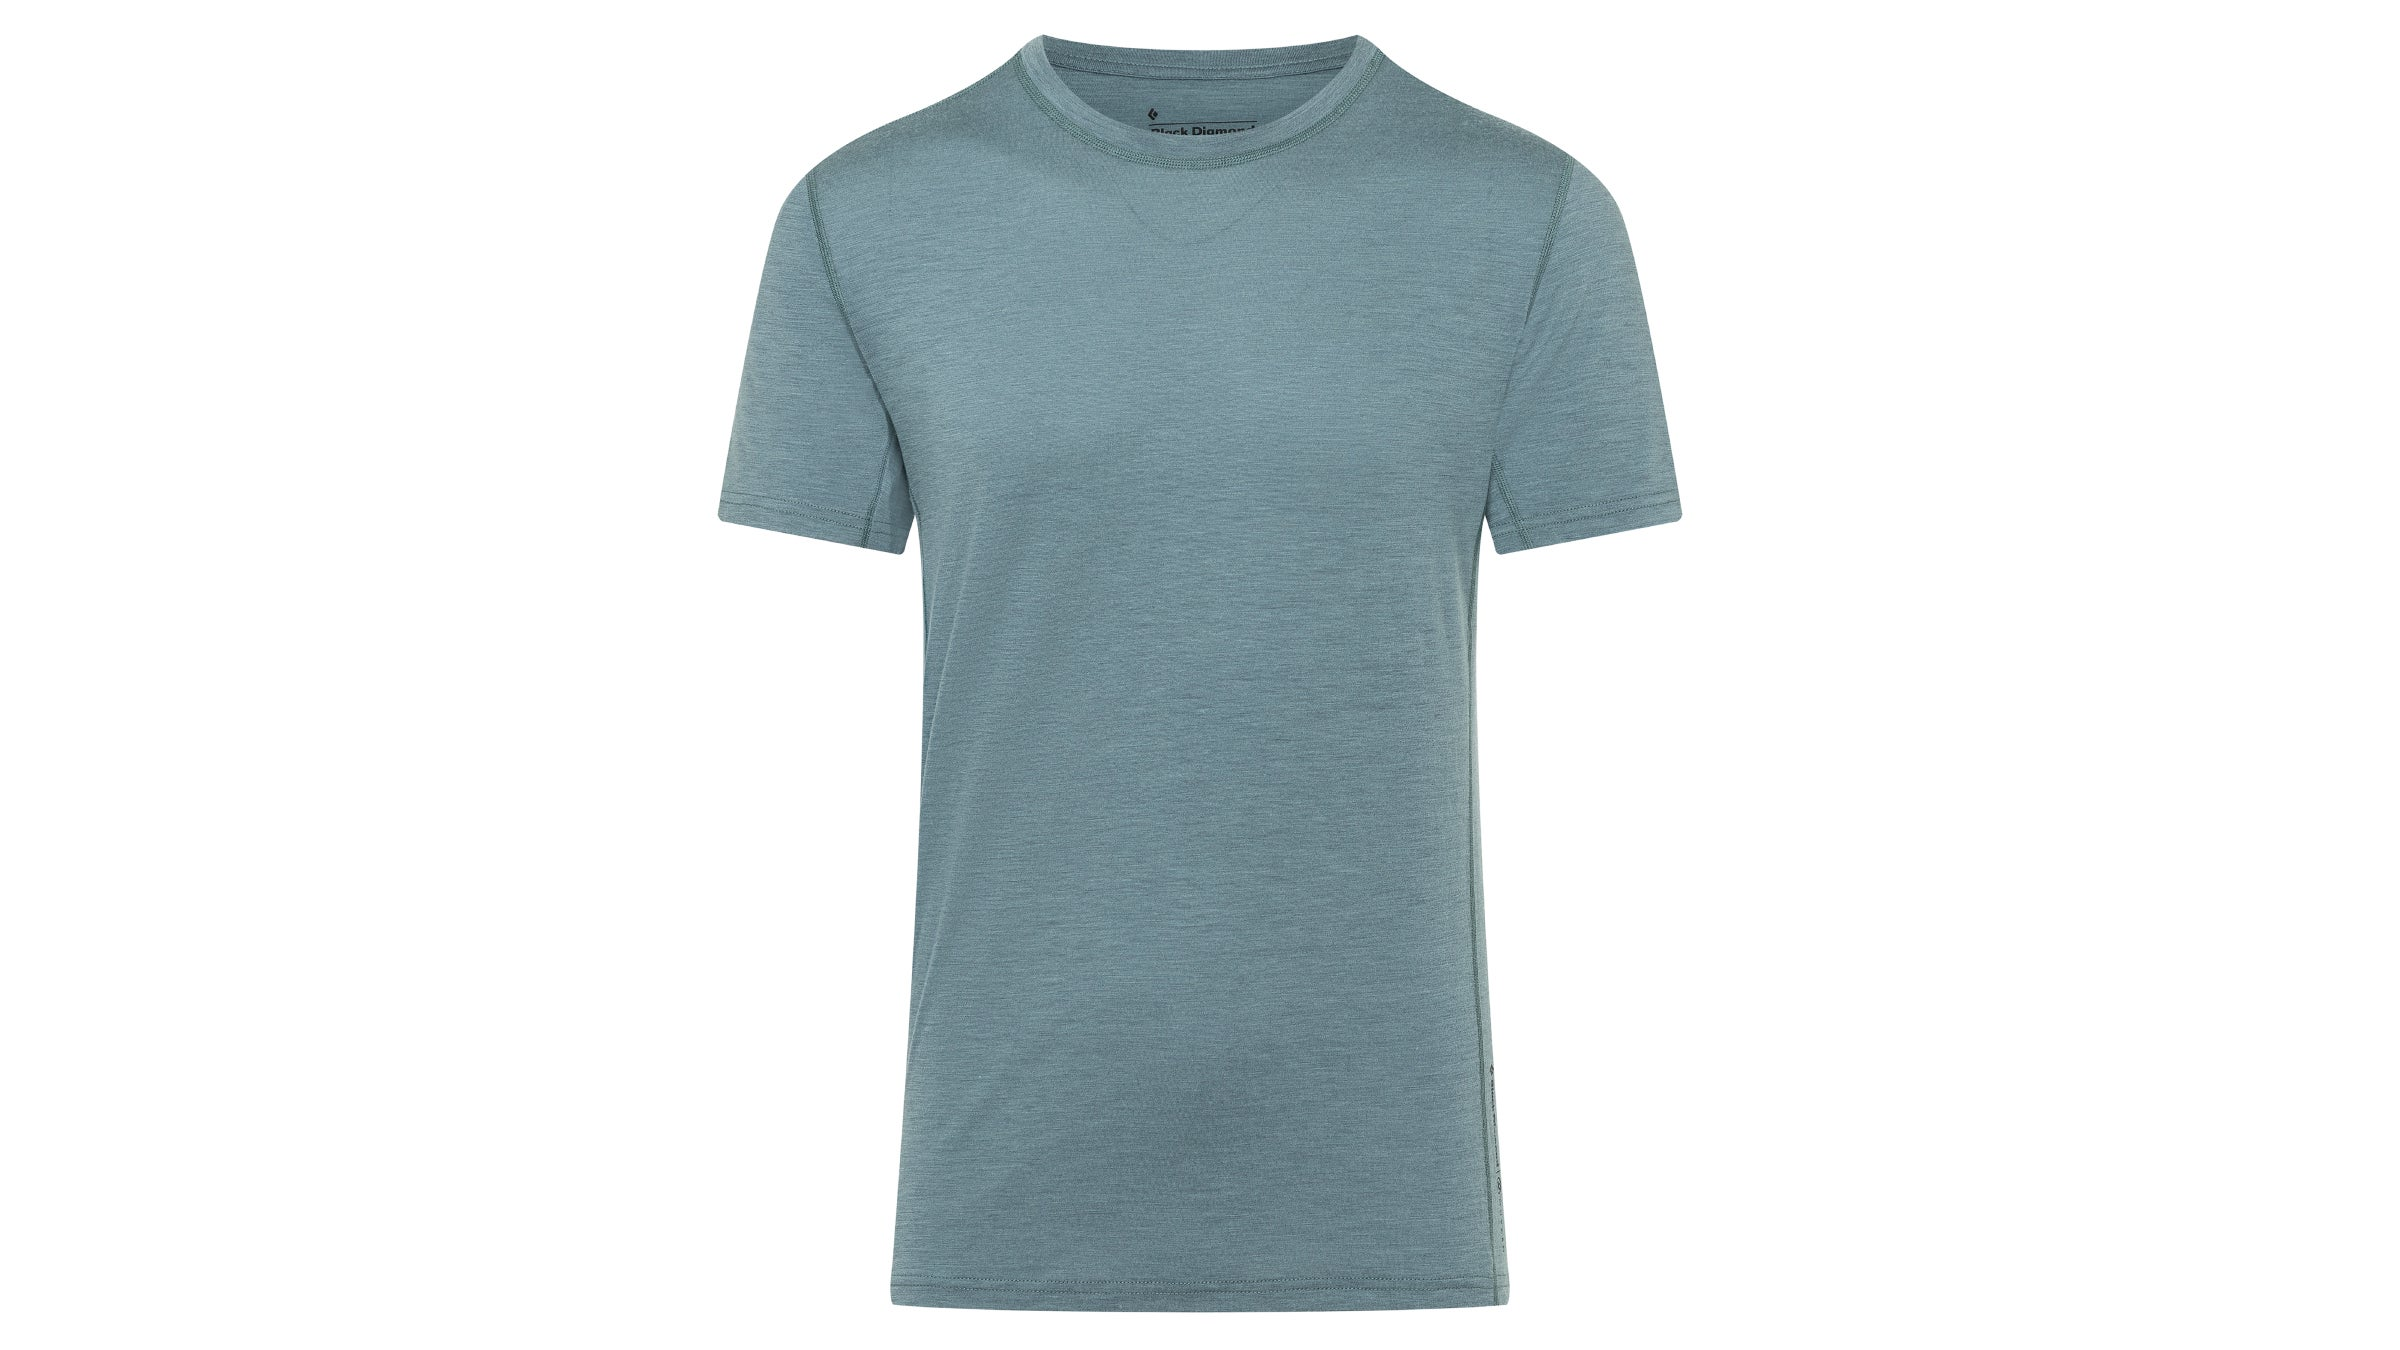 Men's Black Diamond flux merino tee